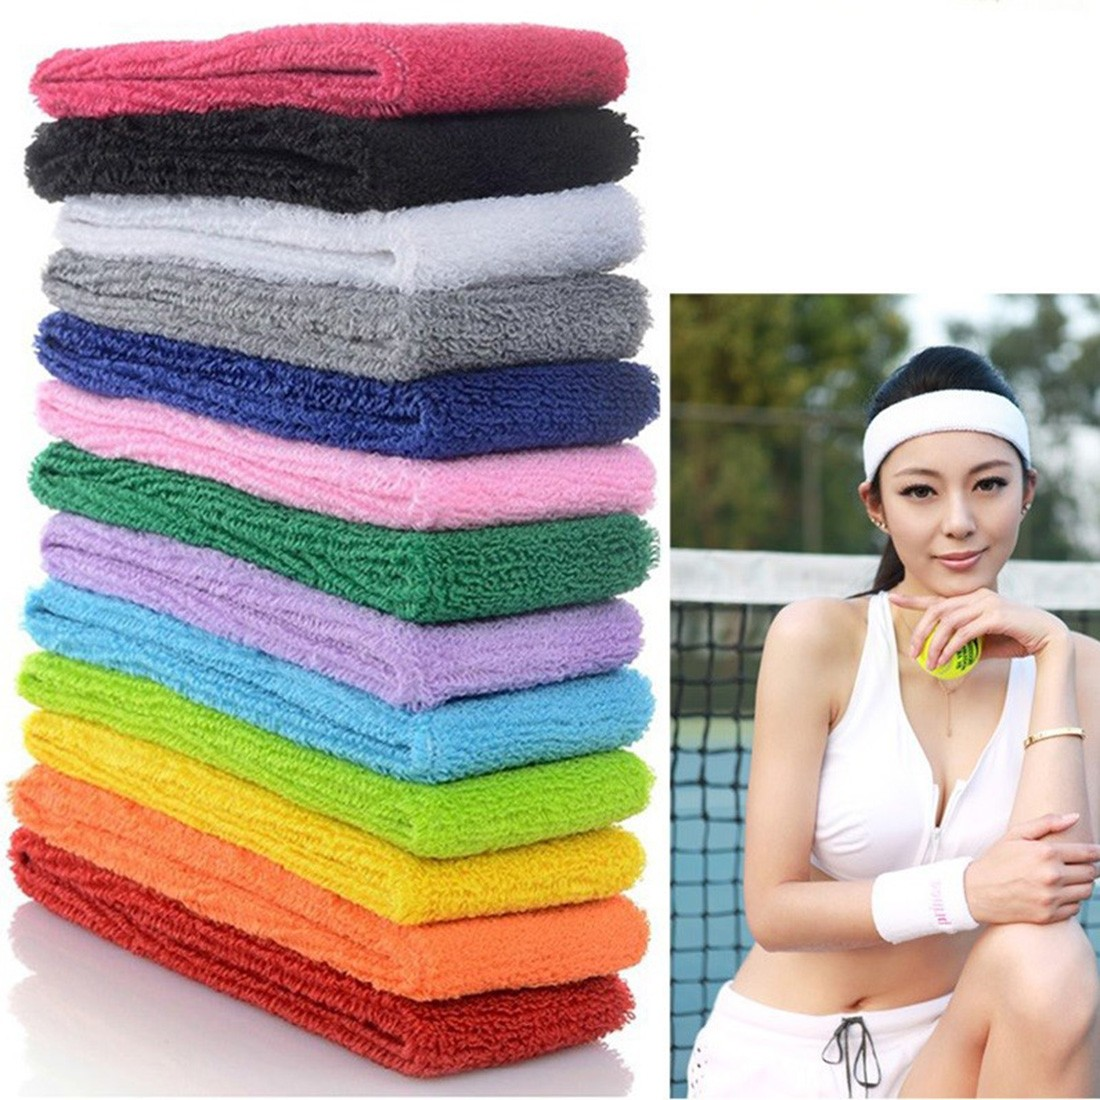 2018 NEW Sports Yoga Gym Stretch Headband Head Band Hair Band Sweat Sweatband Mens Women yoga gym sport stretch headband womens anti sweat hairband cotton men women sweatband running outdoor fitness